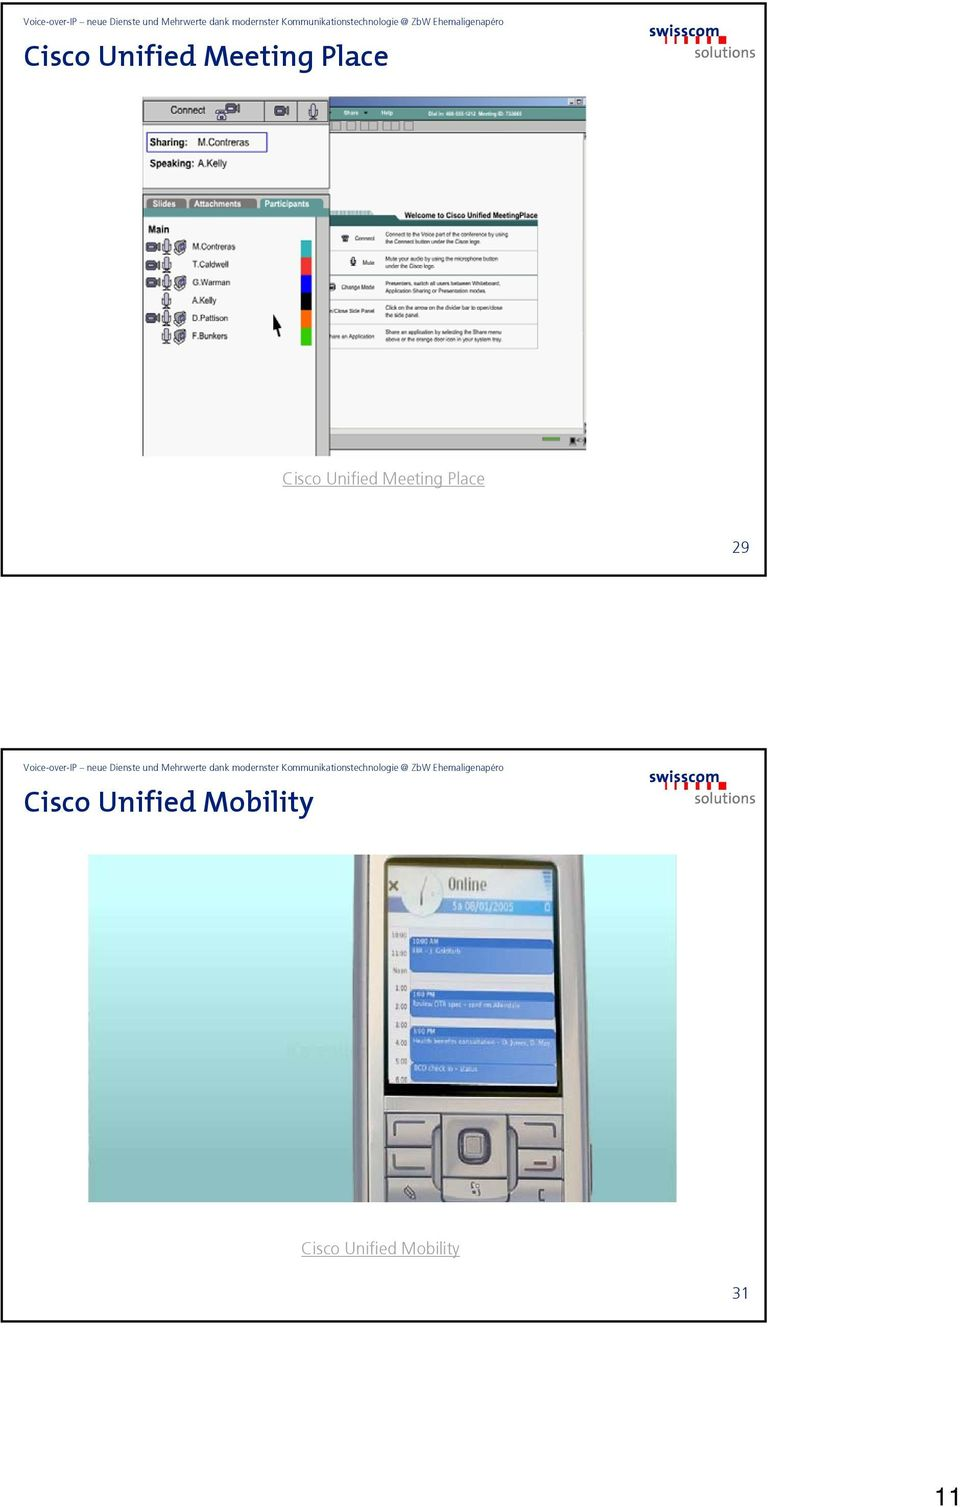 Cisco Unified Mobility 31